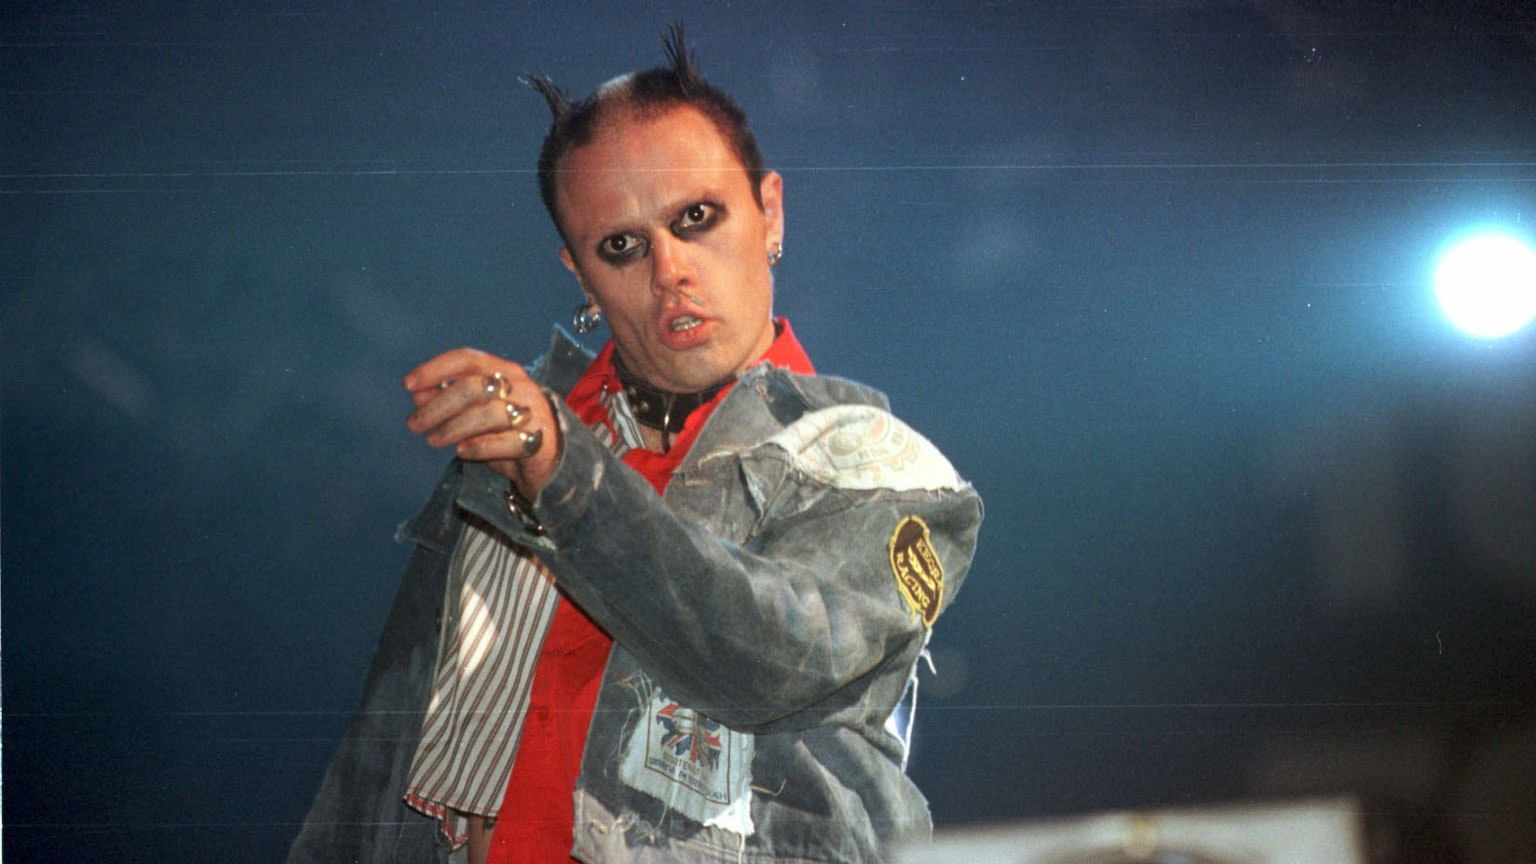 Keith Flint – In Memoriam